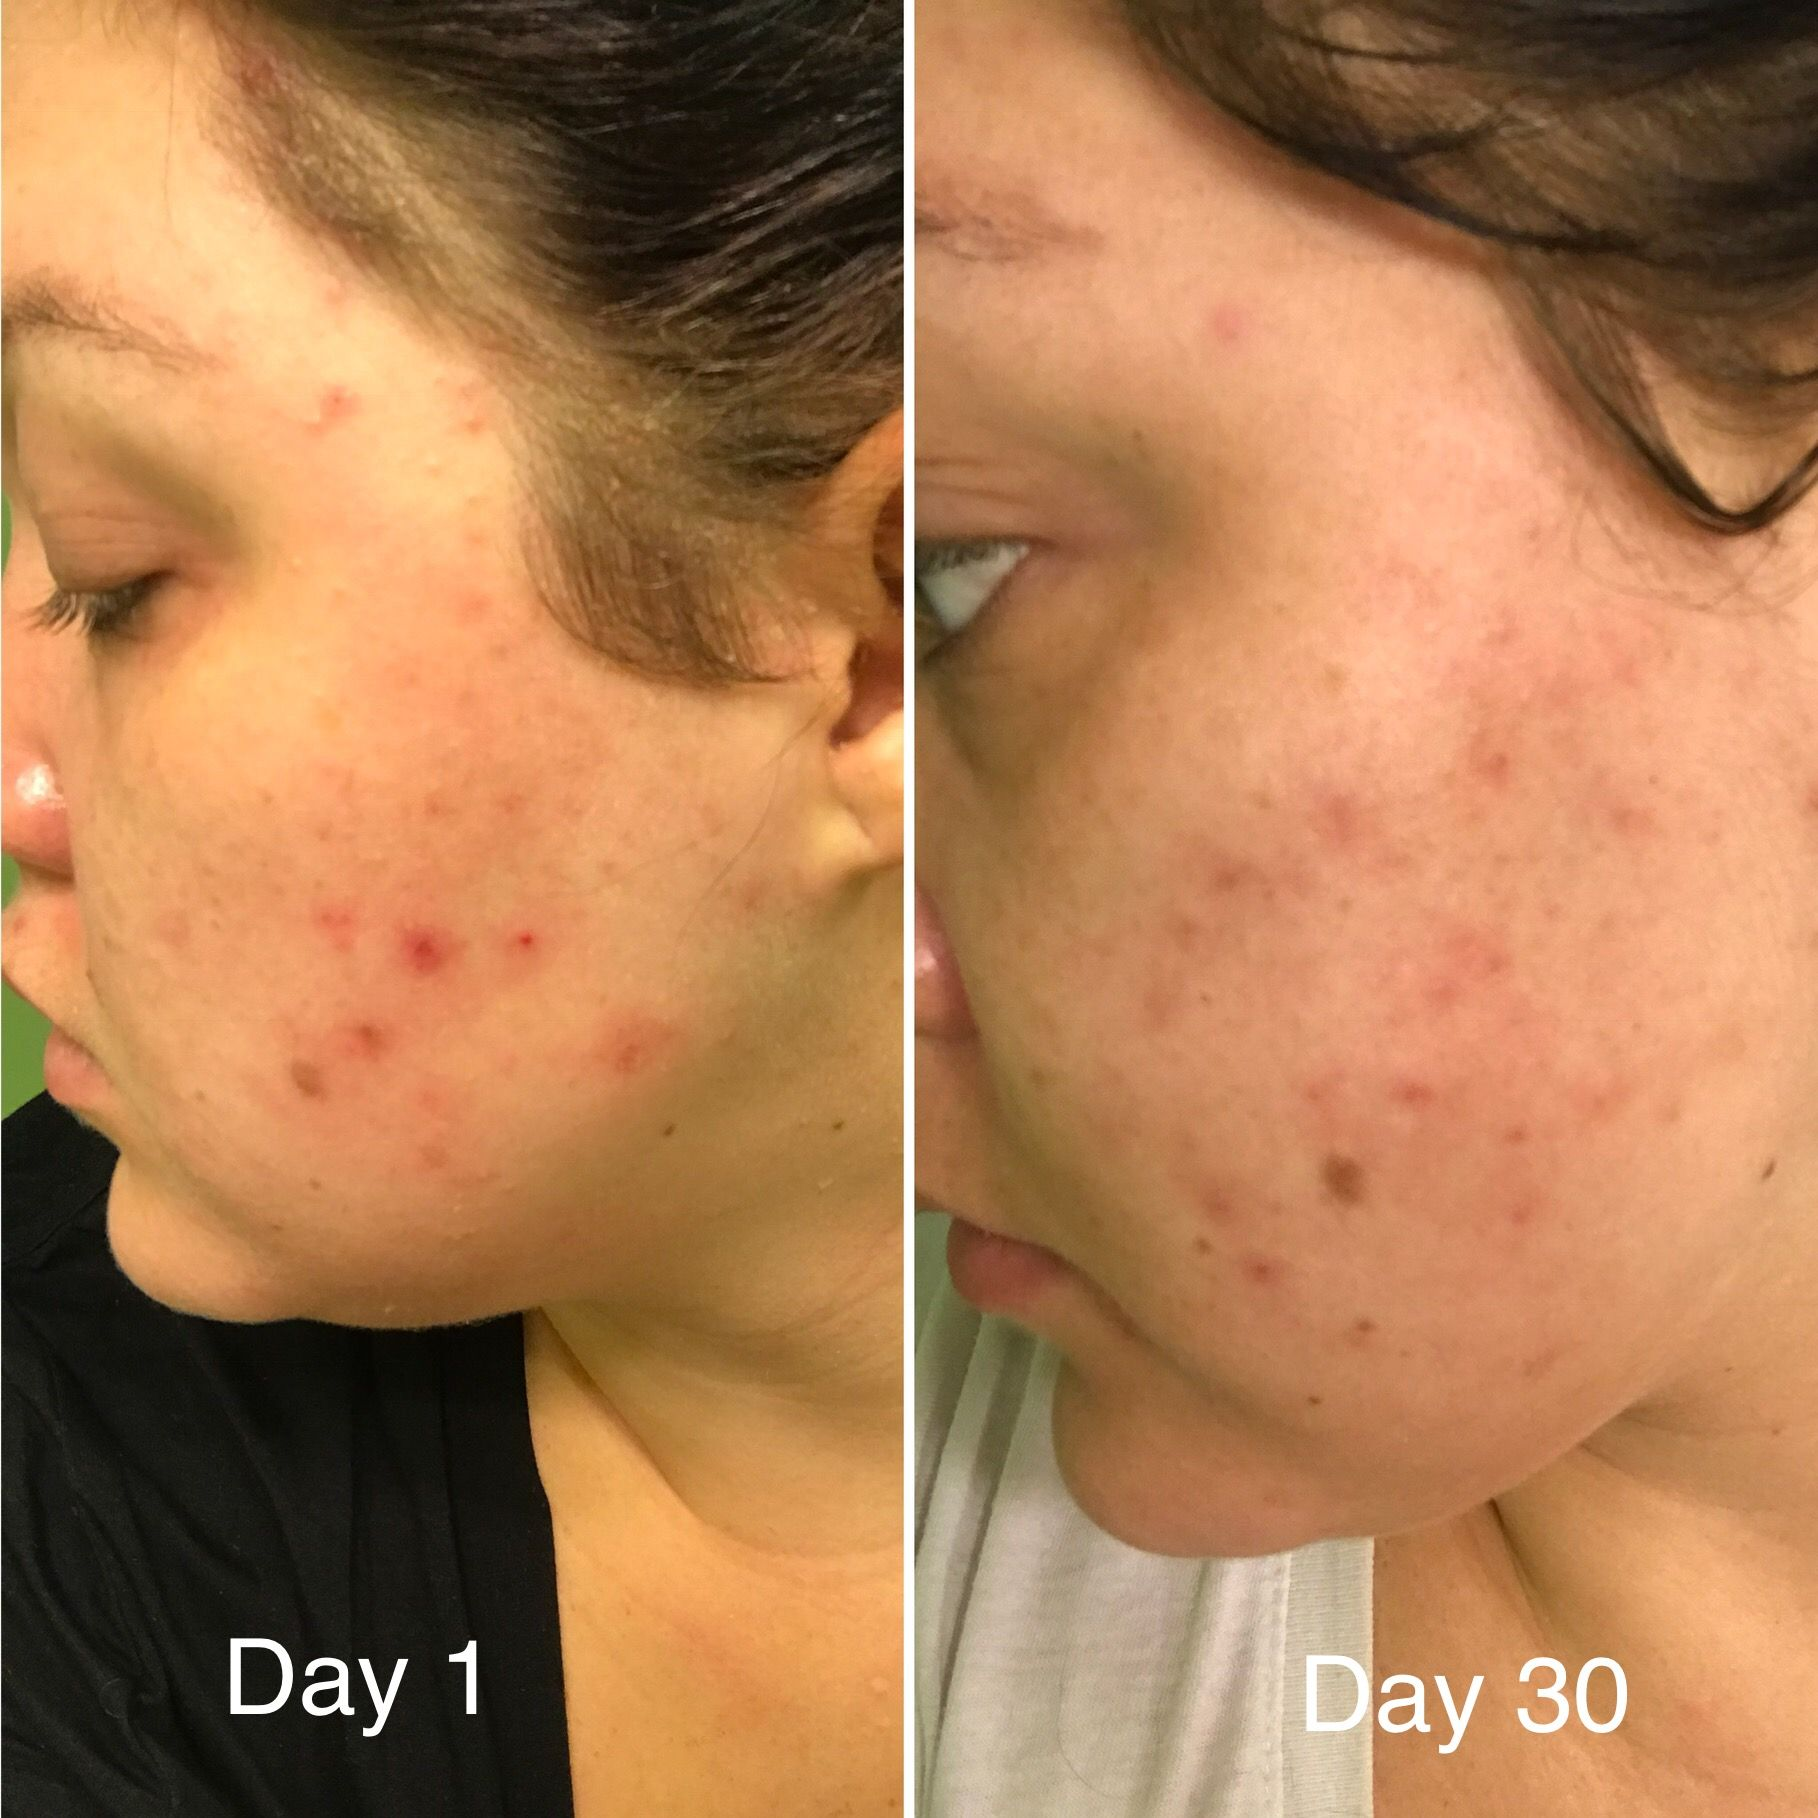 Progress Photos Of My Cystic Acne I Used Limelight By Alcone Skincare Products Morning Routine Dream Clean Skin Therapi Skin Therapist Face Wash Face Oil